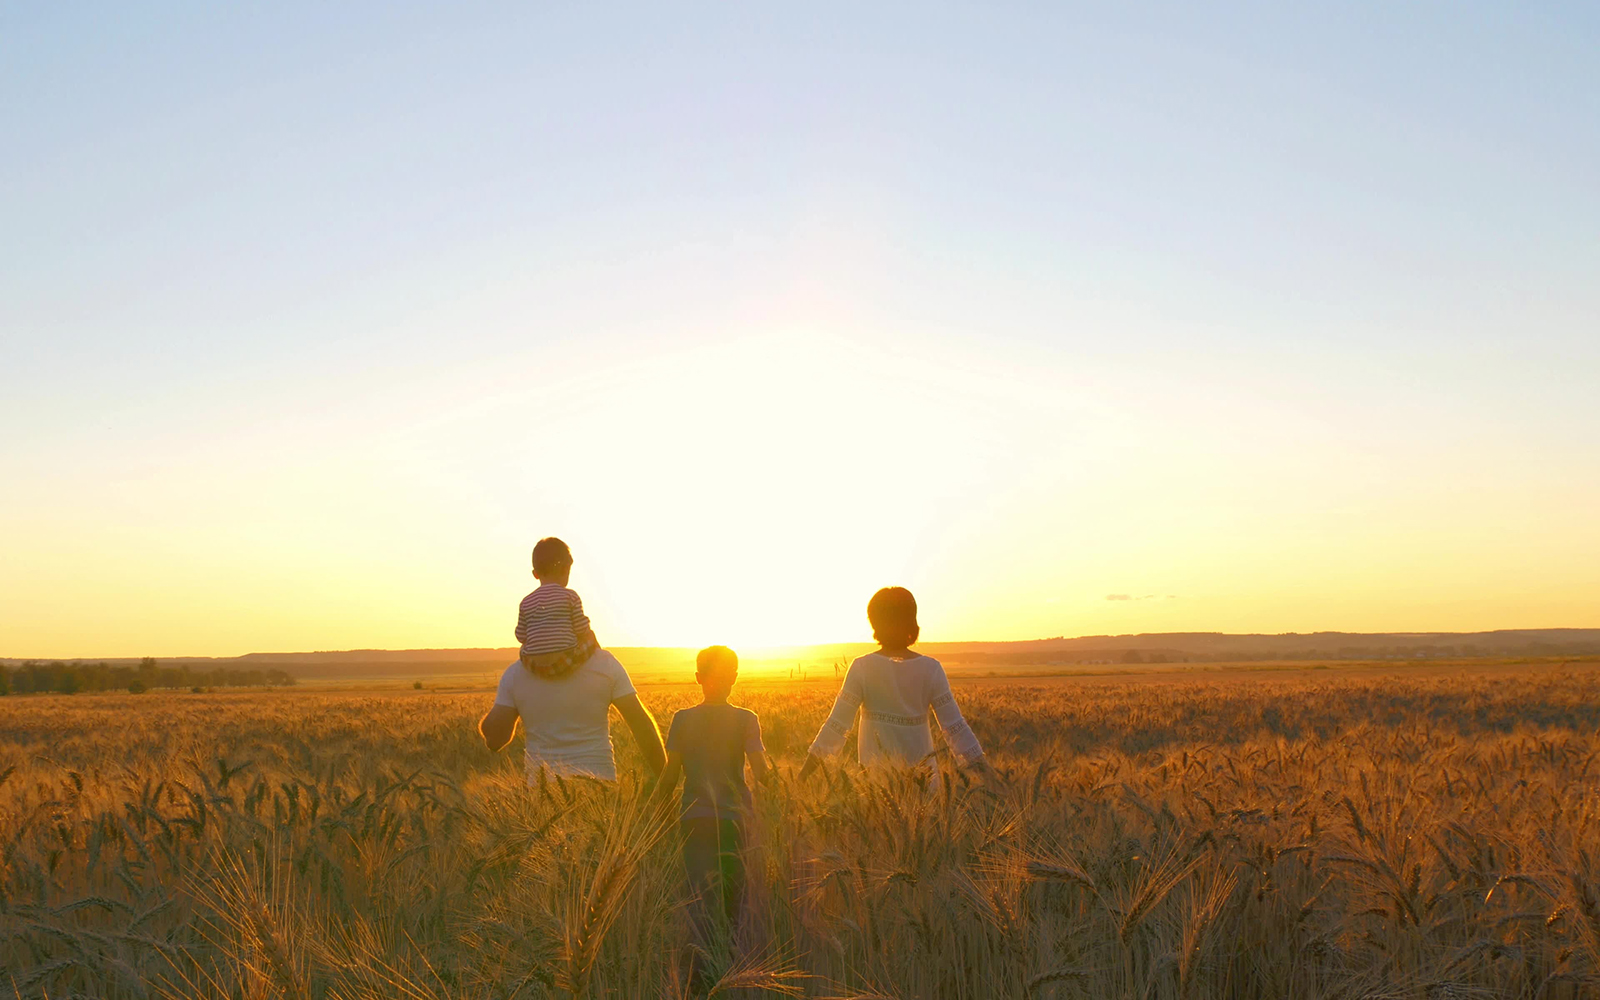 A family walking through a field at sunset